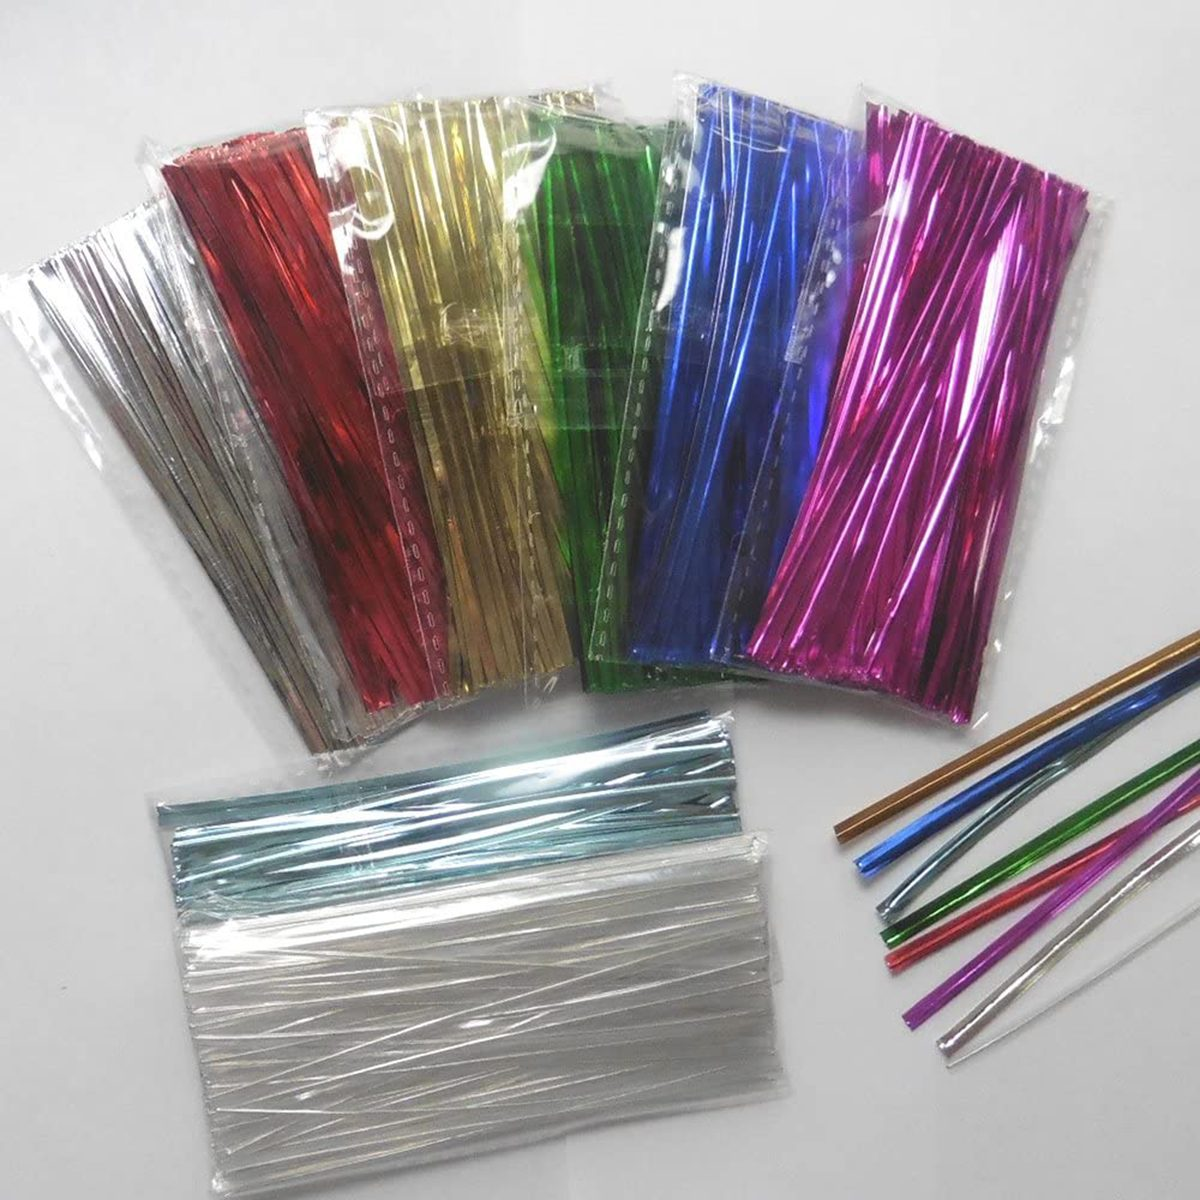 """Weststone Brand - 800pcs 4"""" Metallic Twist Ties, red, blue, green, gold, silver, clear and pink"""